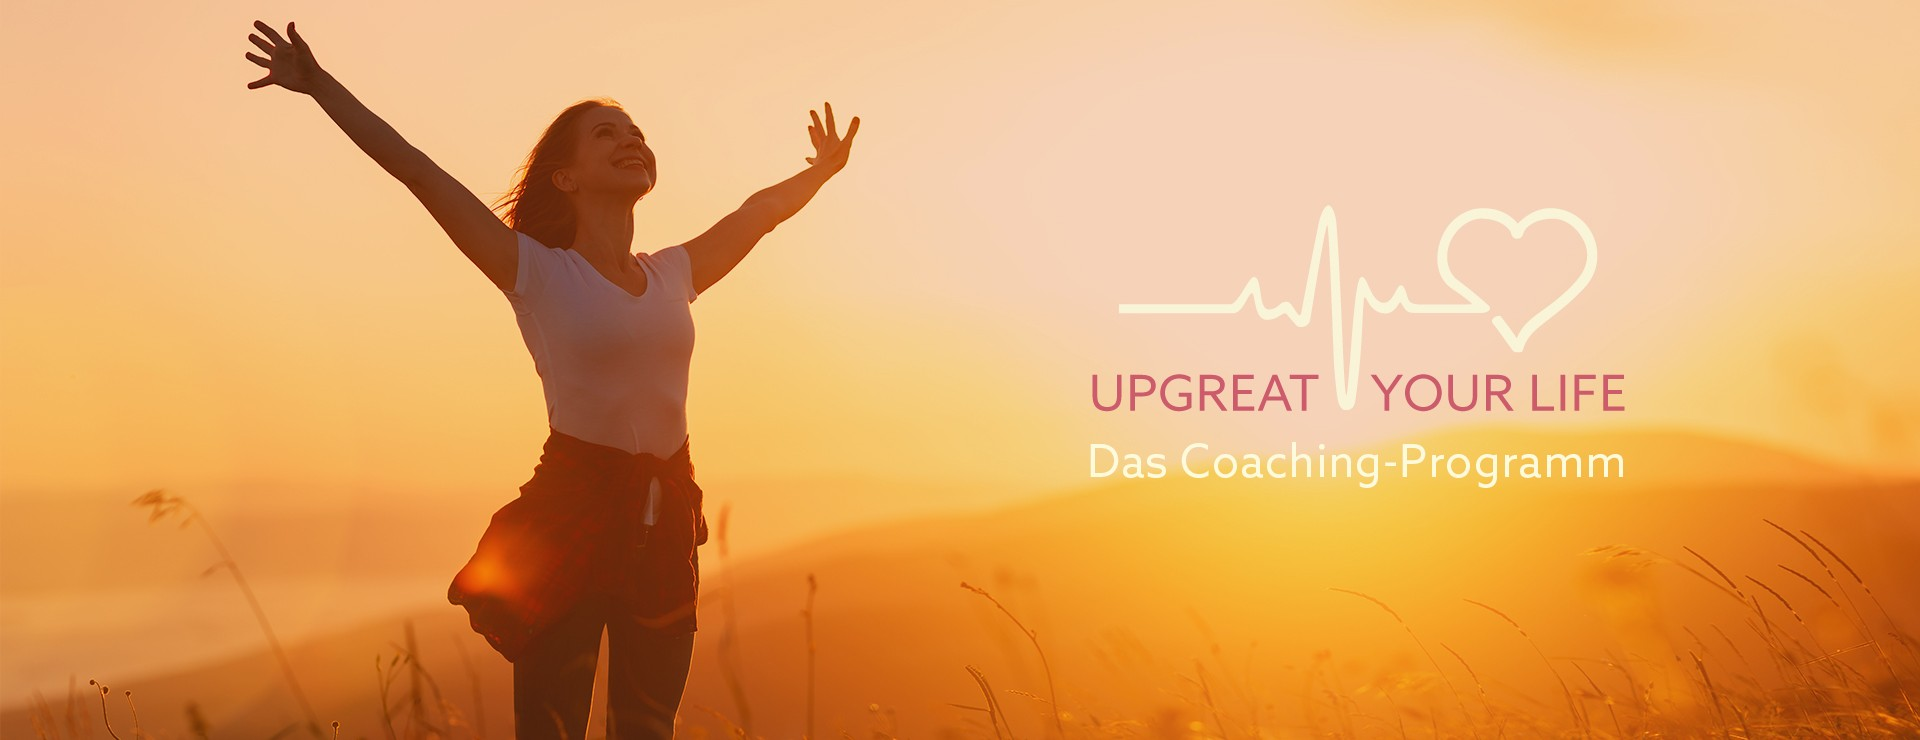 UpGreat Your Life 2019 Coaching